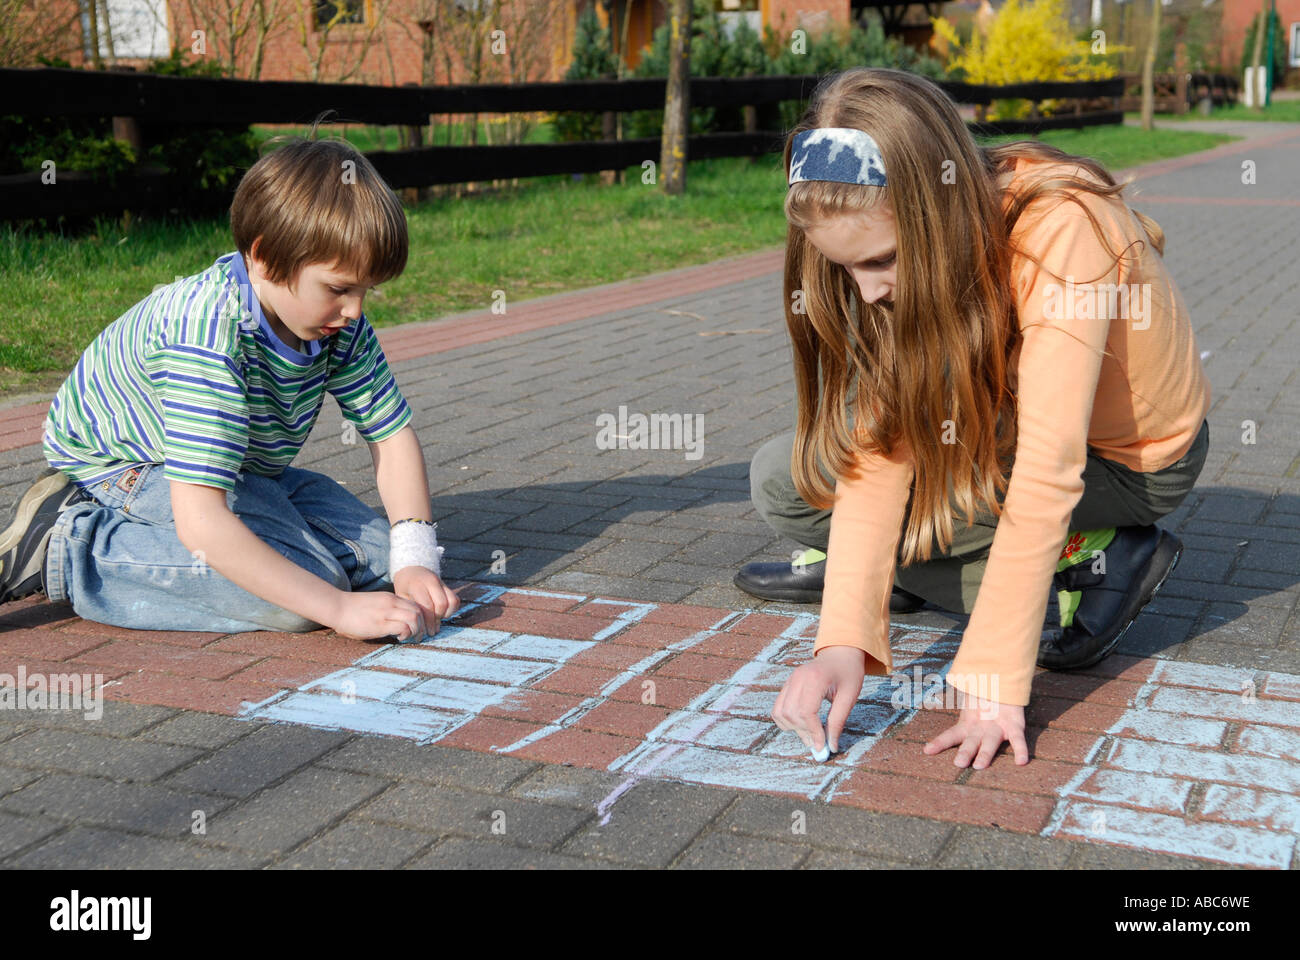 Children paint with chalk on the road - Stock Image